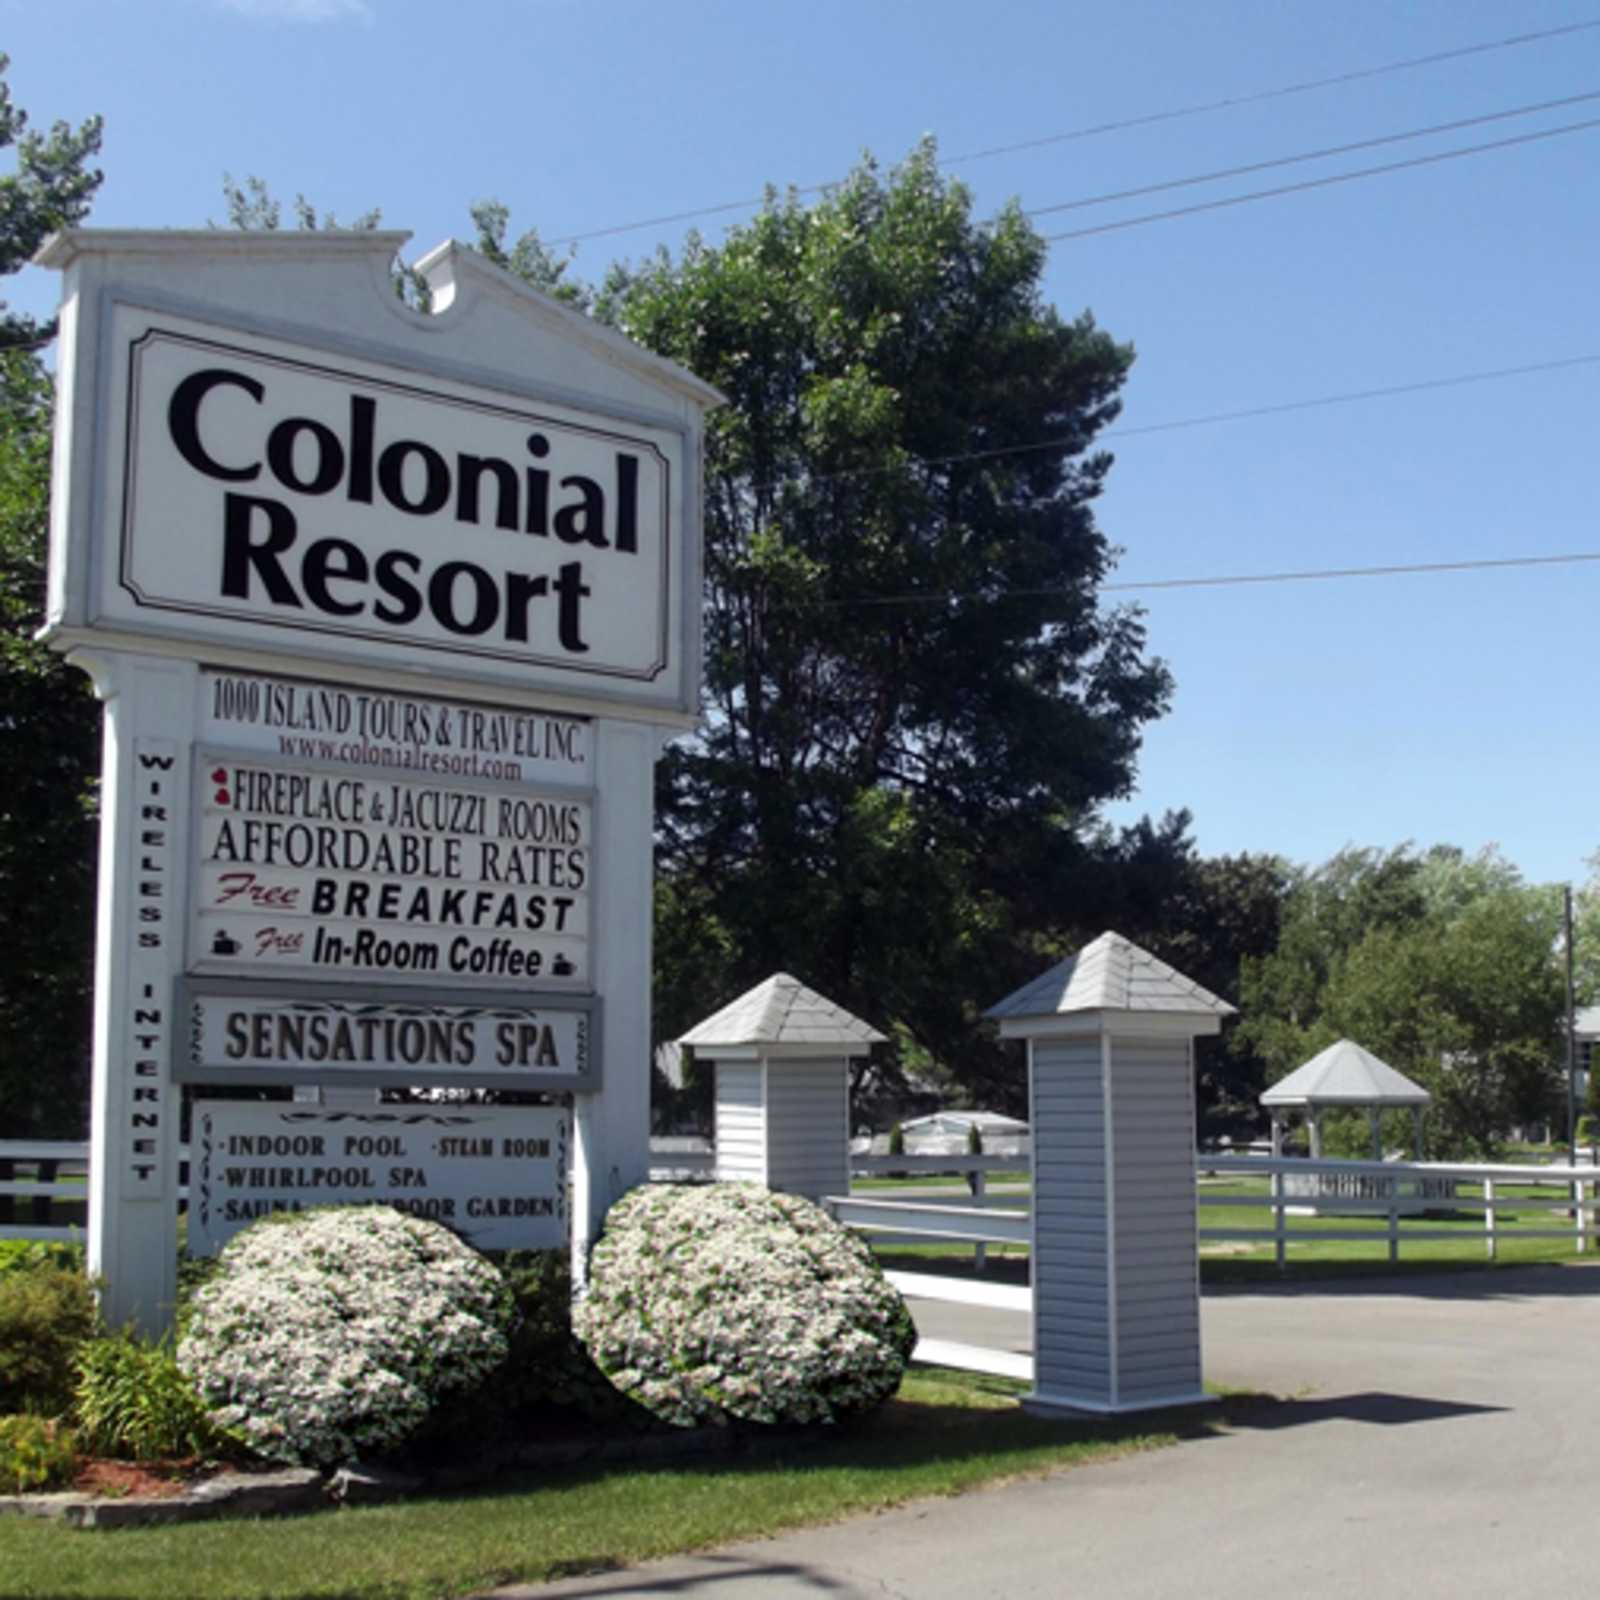 Colonial Resort